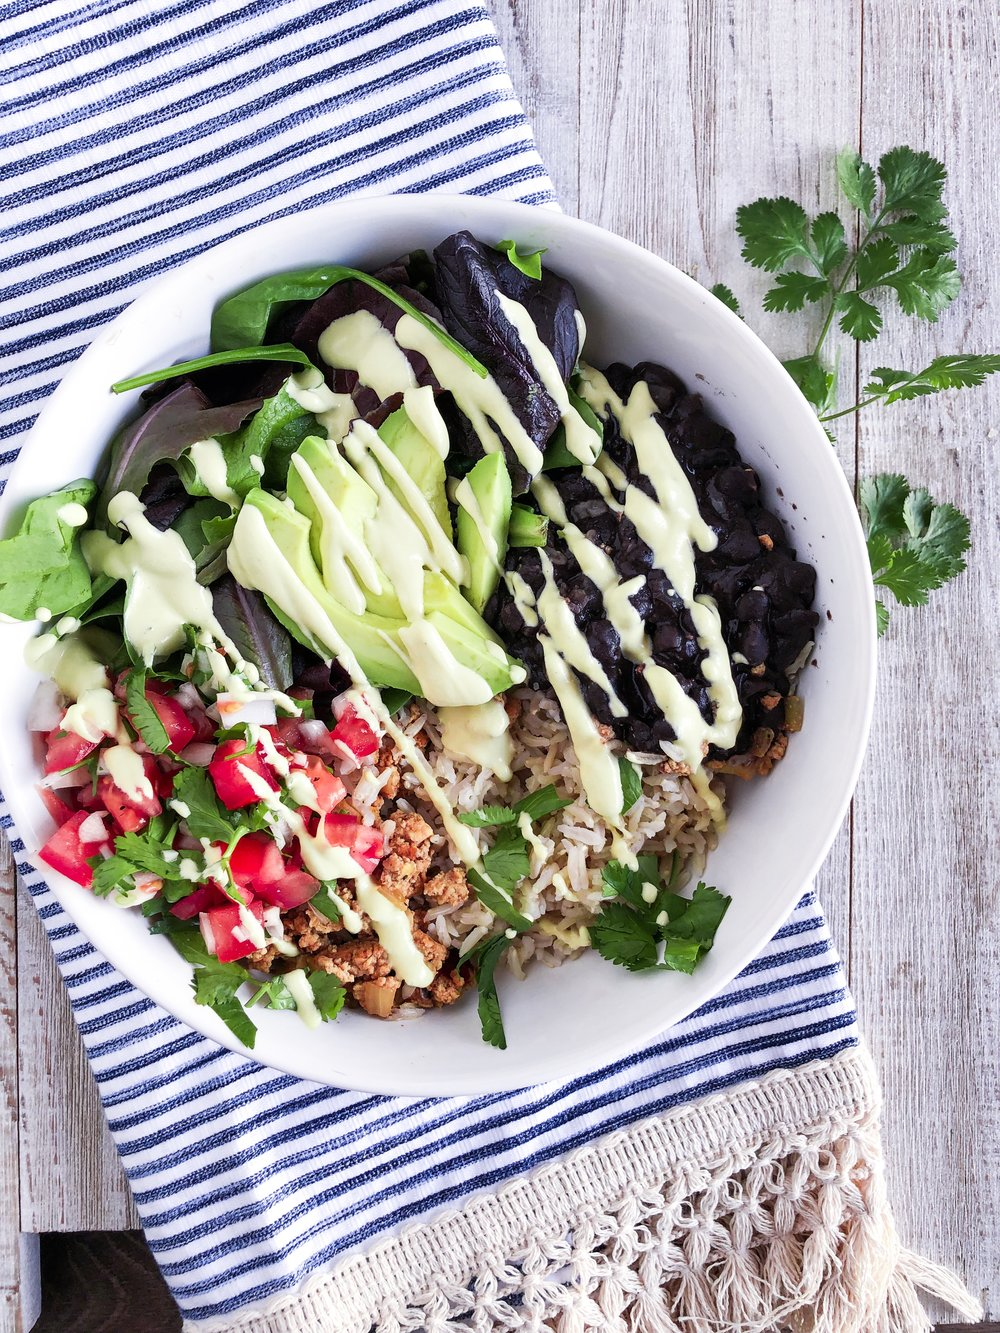 Chipotle style Rice Bowl with Sofritas - Plant-based, vegan, and delicious. Download the recipe and others in this FREE 7-Day Meal Plan and grocery list. #plantbased #vegan #healthyeating #freedownload #cleaneating #chipotle #ricebowl